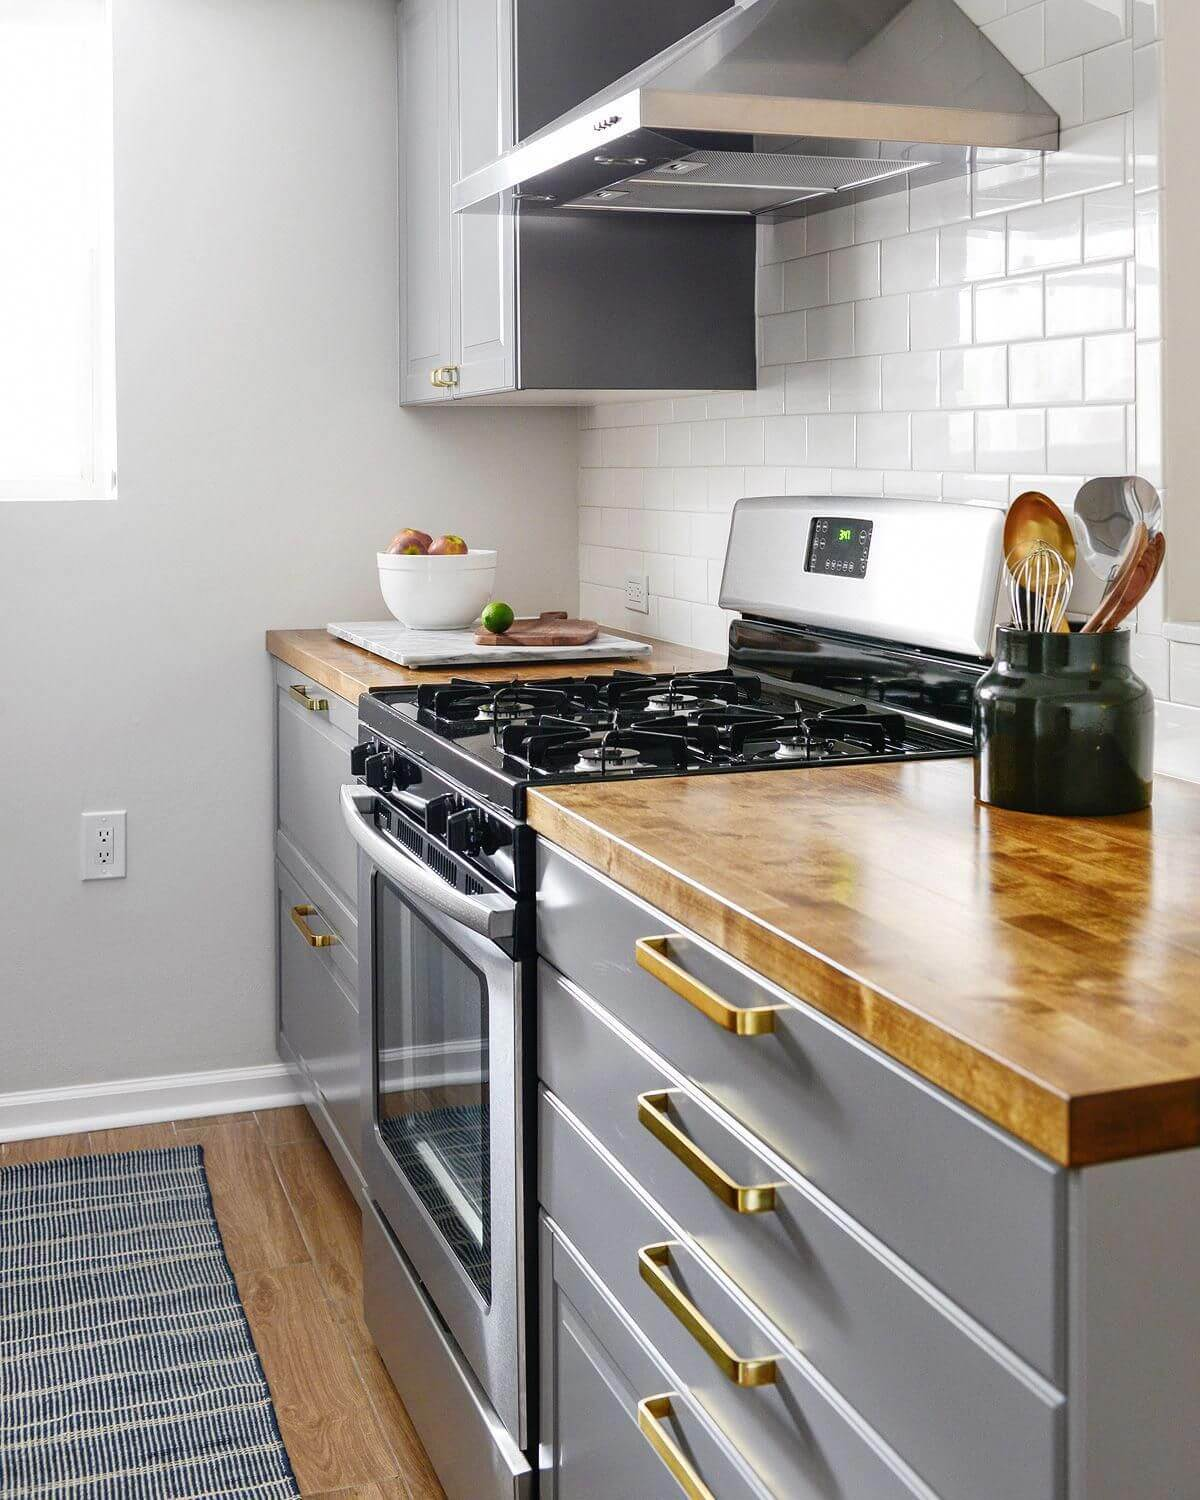 Wooden Counters and Stainless Steel Storage